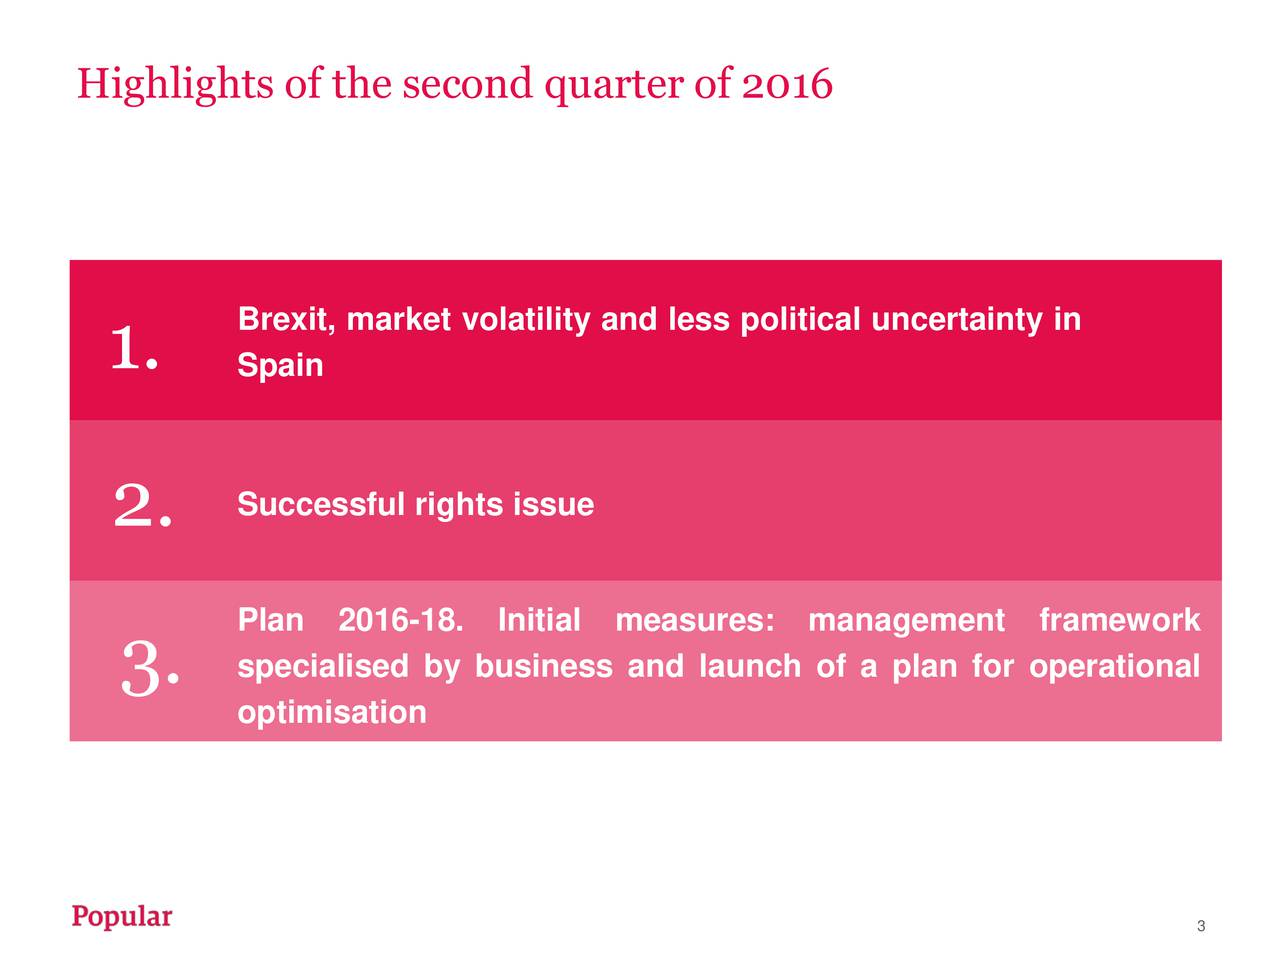 1. Brexit, market volatility and less political uncertainty in 1. Spain 2. xito Successful rights issueital 2. Plan 2016-18.Initiameasures: management framework 3. 3. specialised by business and launch of a plan for operational optimisation 3